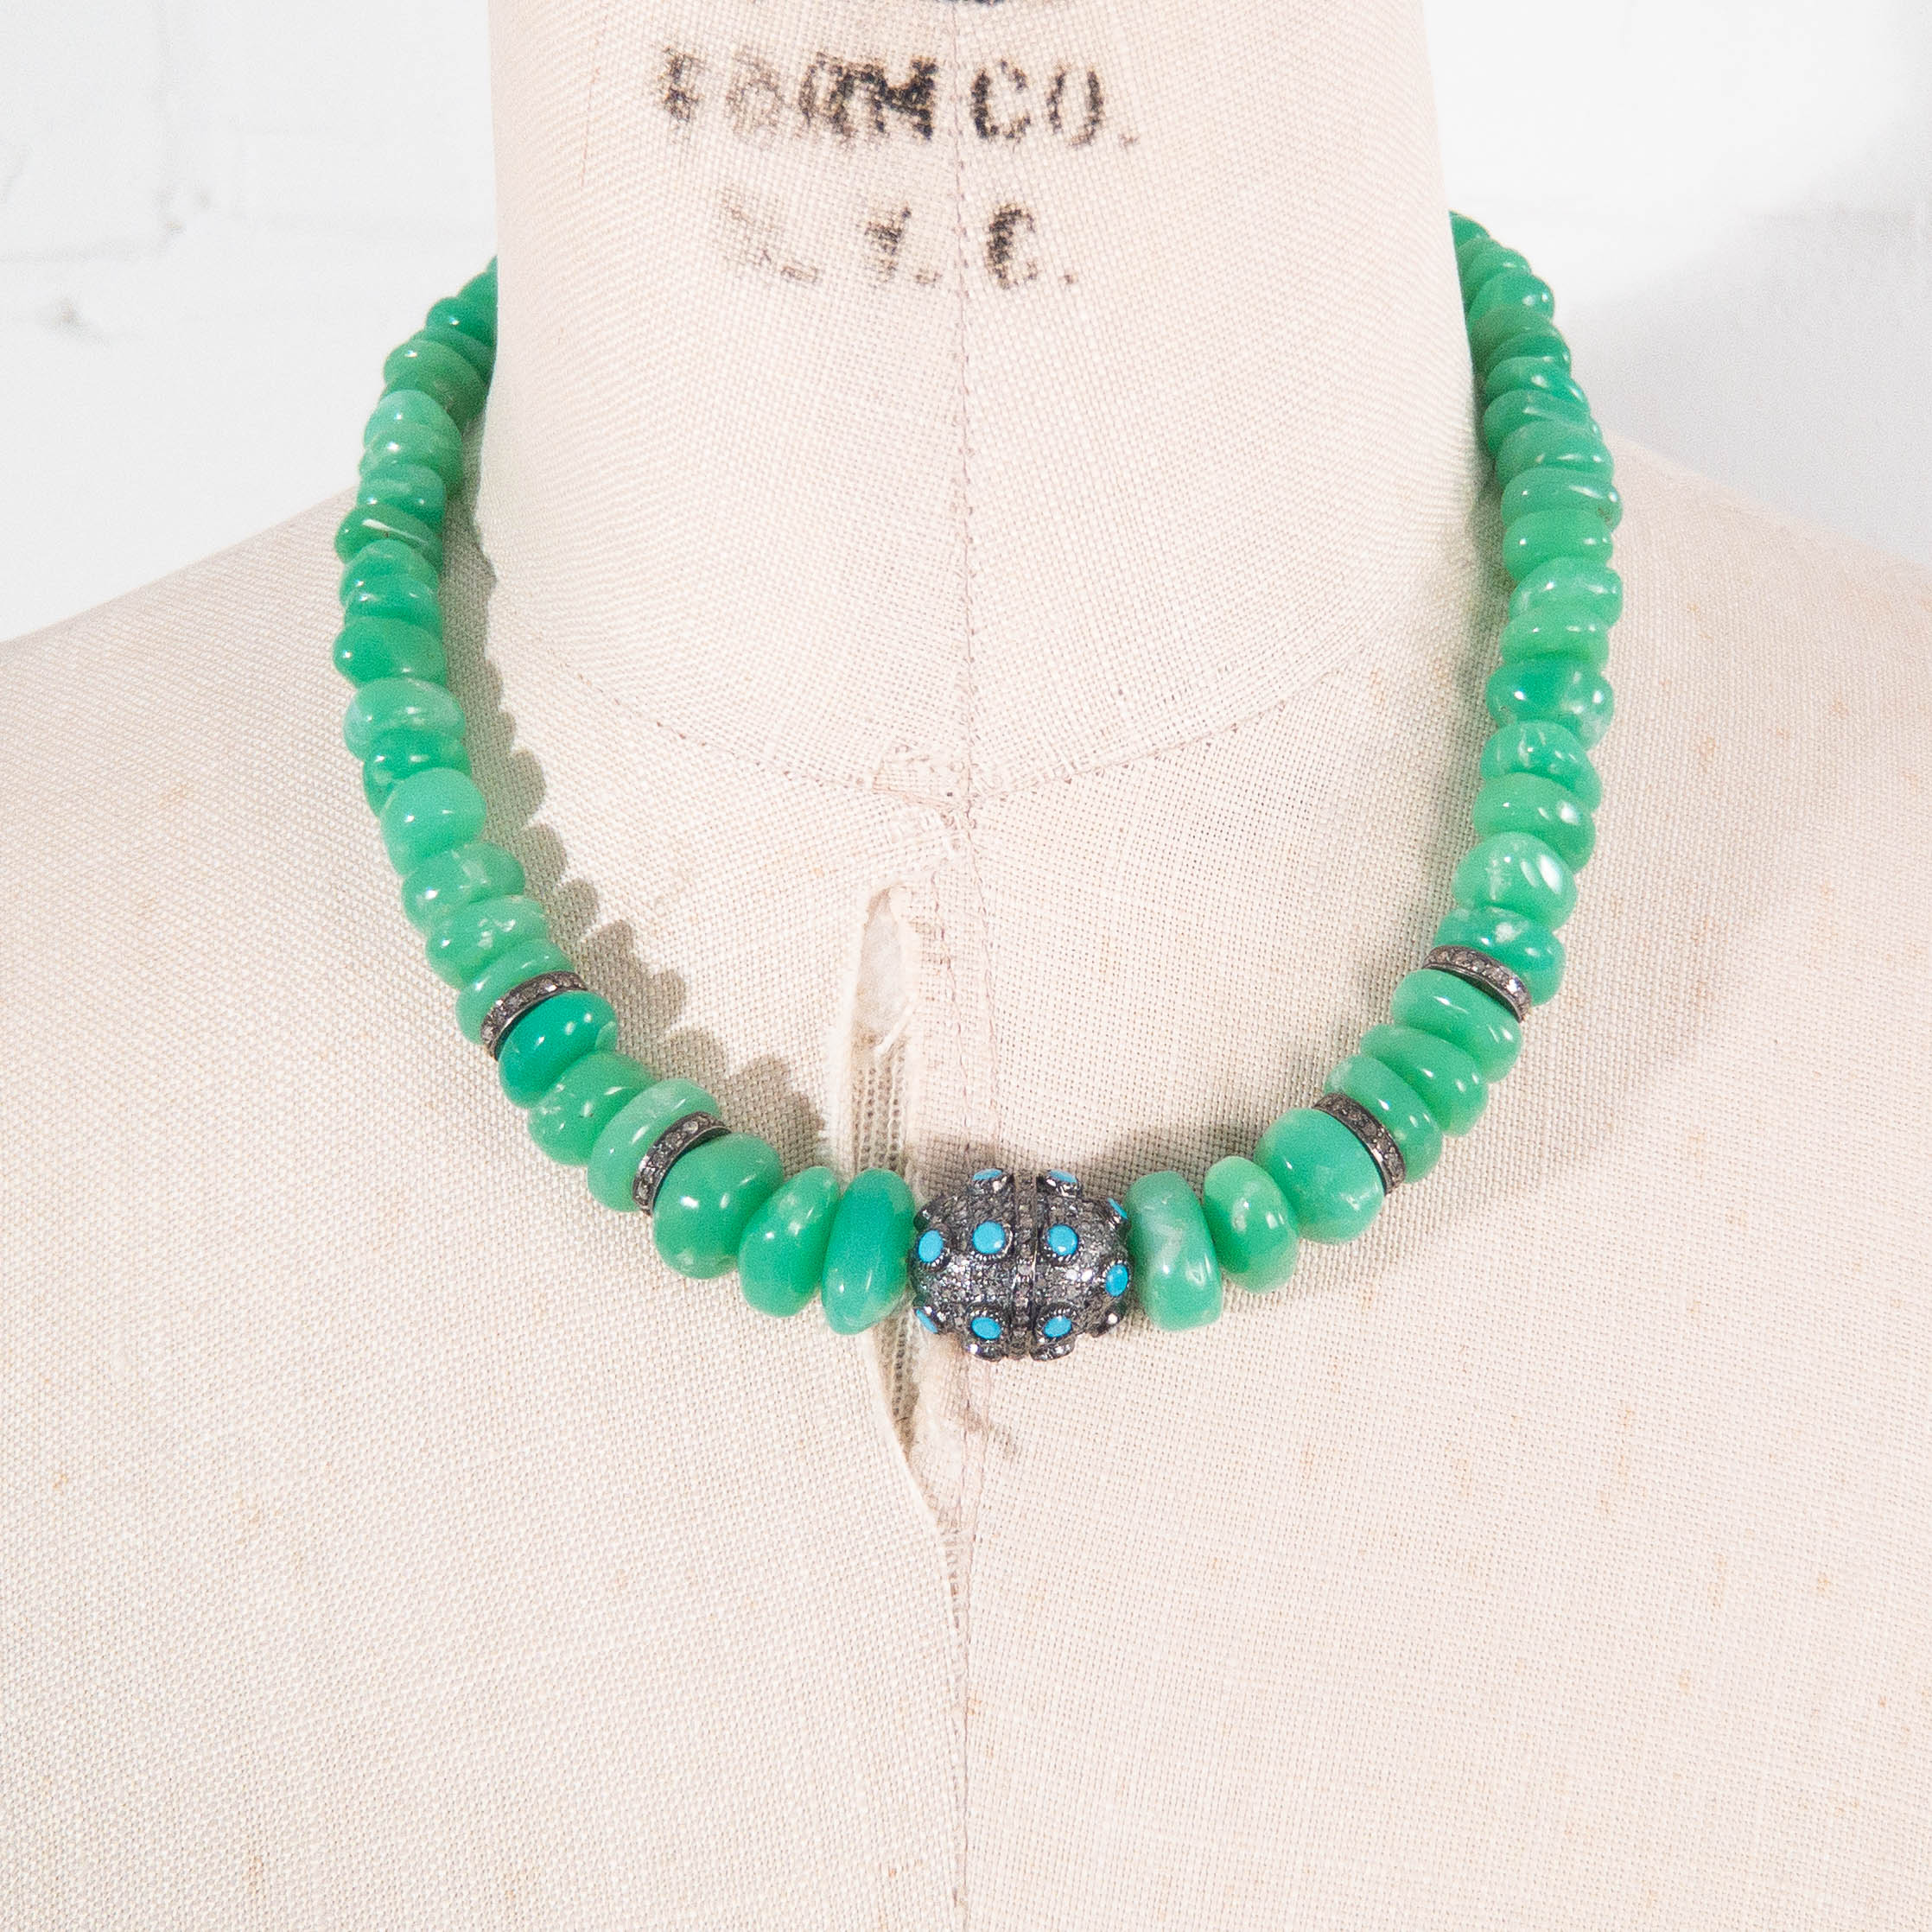 Tumbled Chrysoprase with Pavé Diamond & Turquoise Statement Necklace